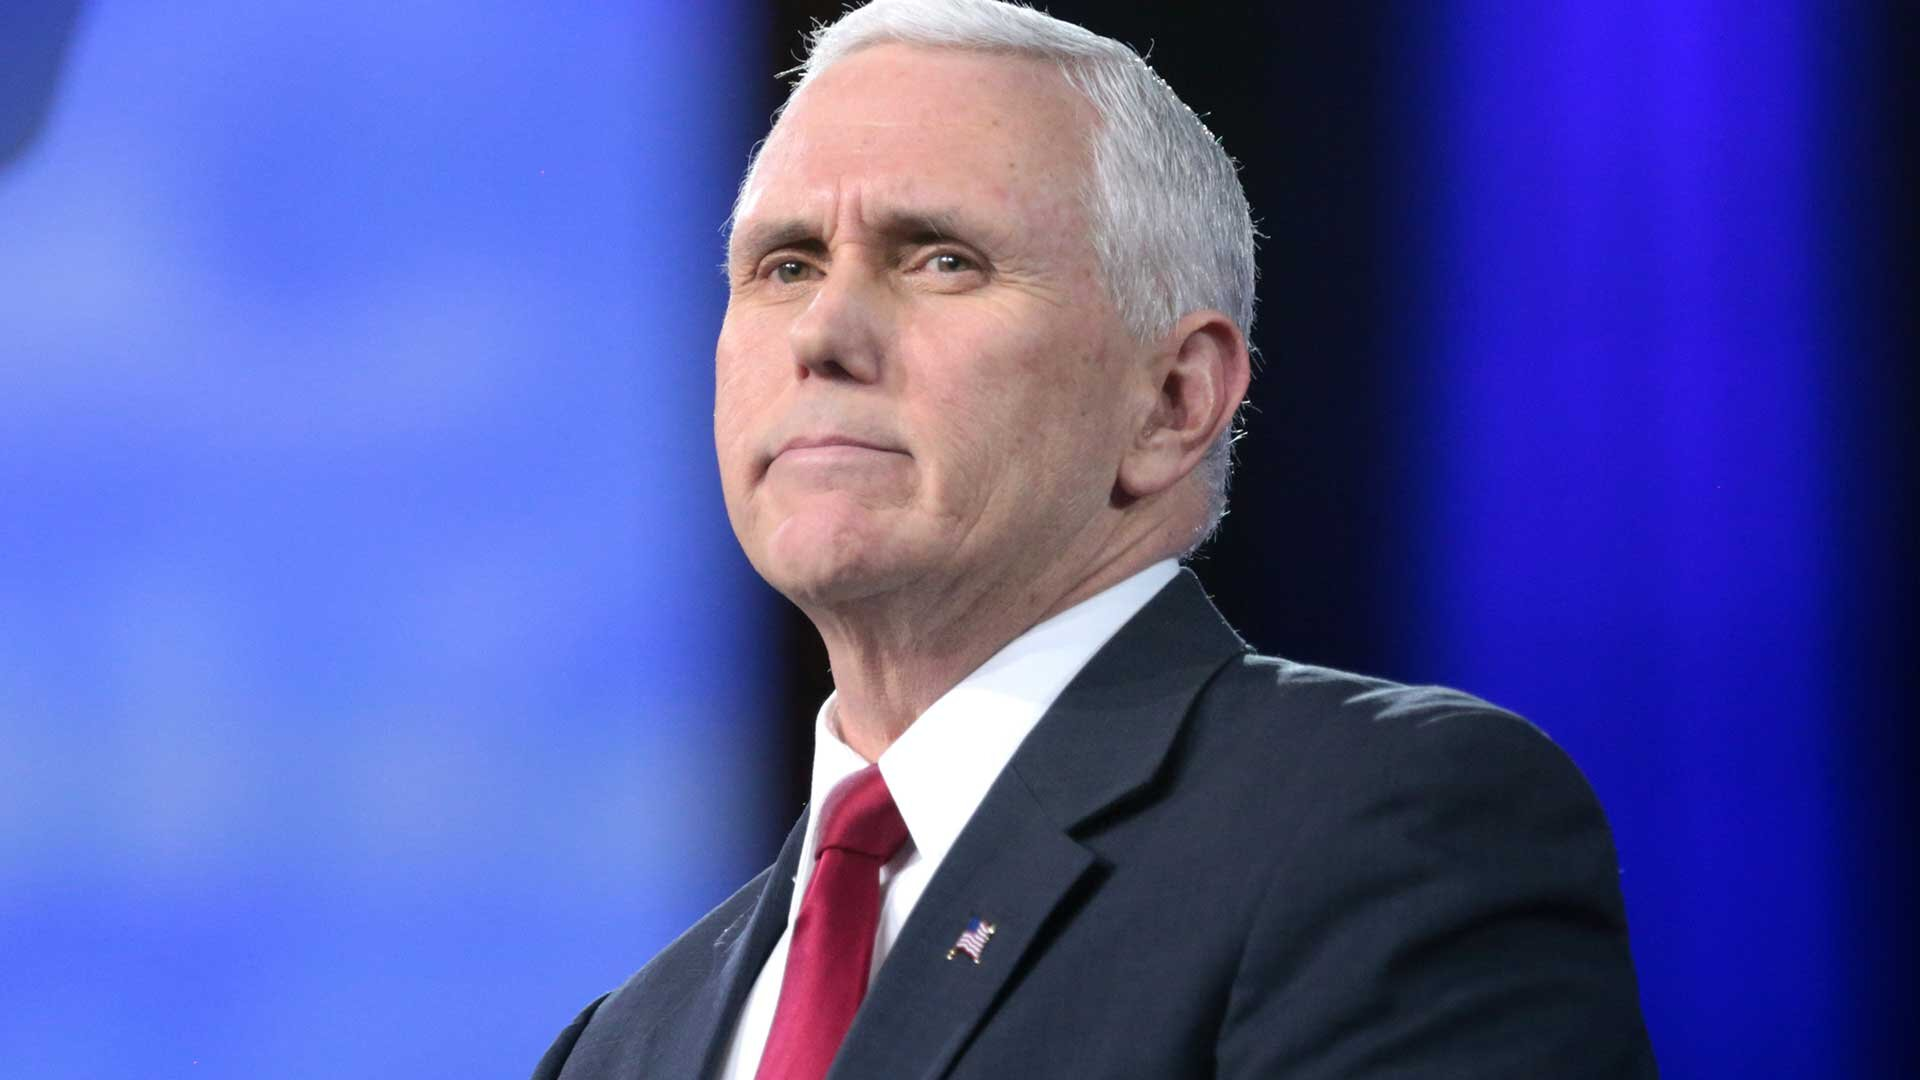 Mike-Pence-Visits-Mayo-Clinic-Seeking-Cure-for-His-Dark-Urges.jpg